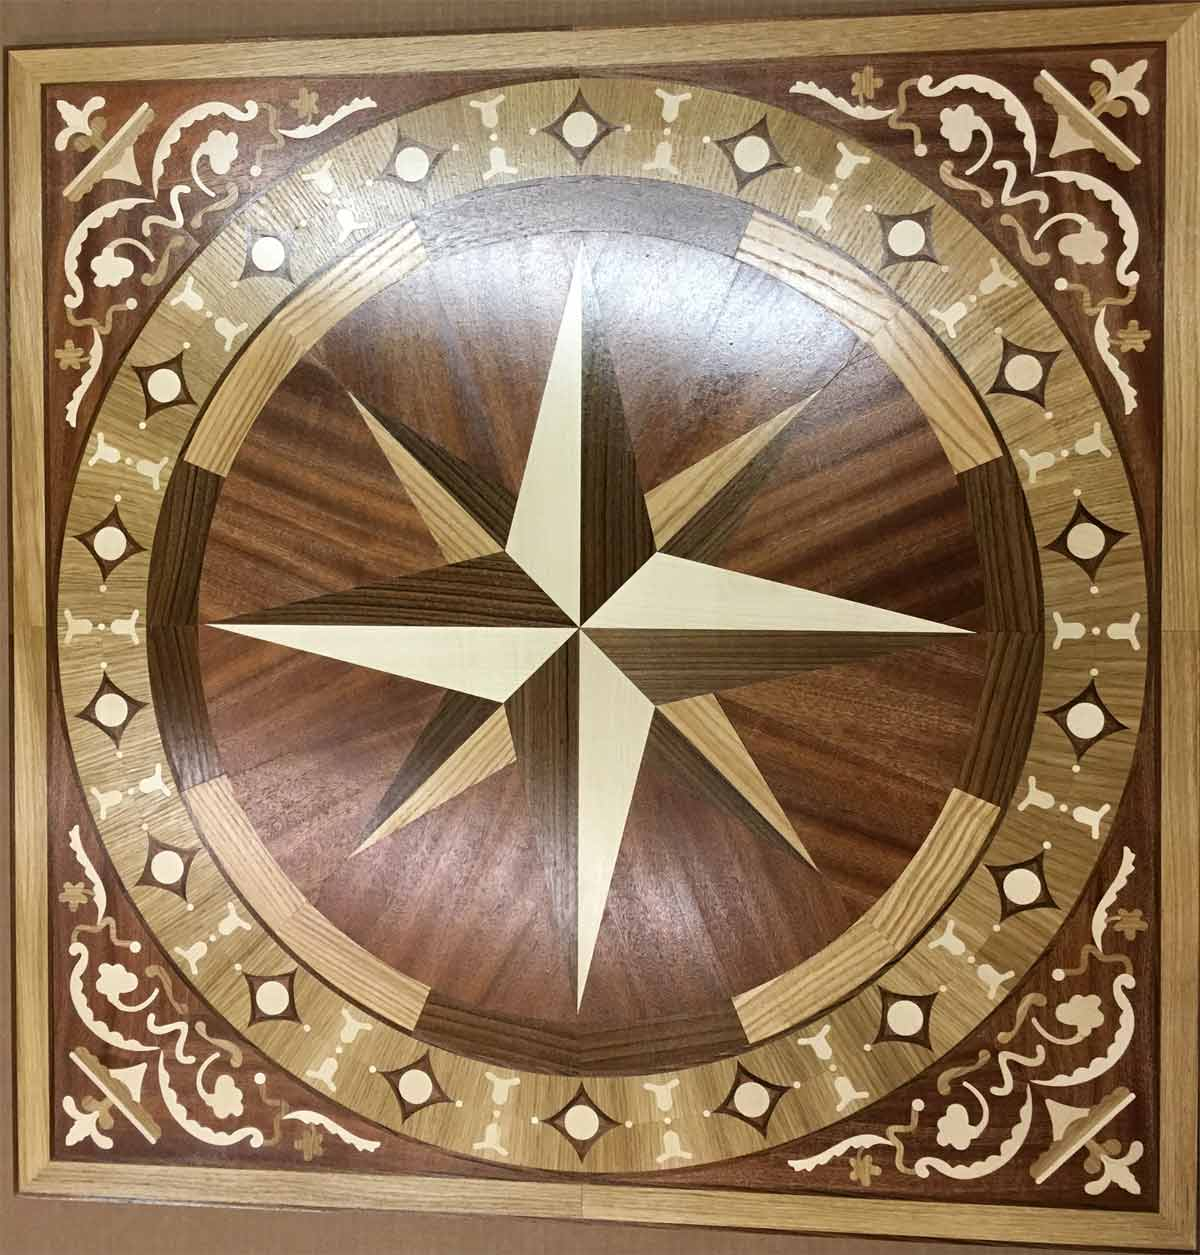 565: R1B wood floor medallion.